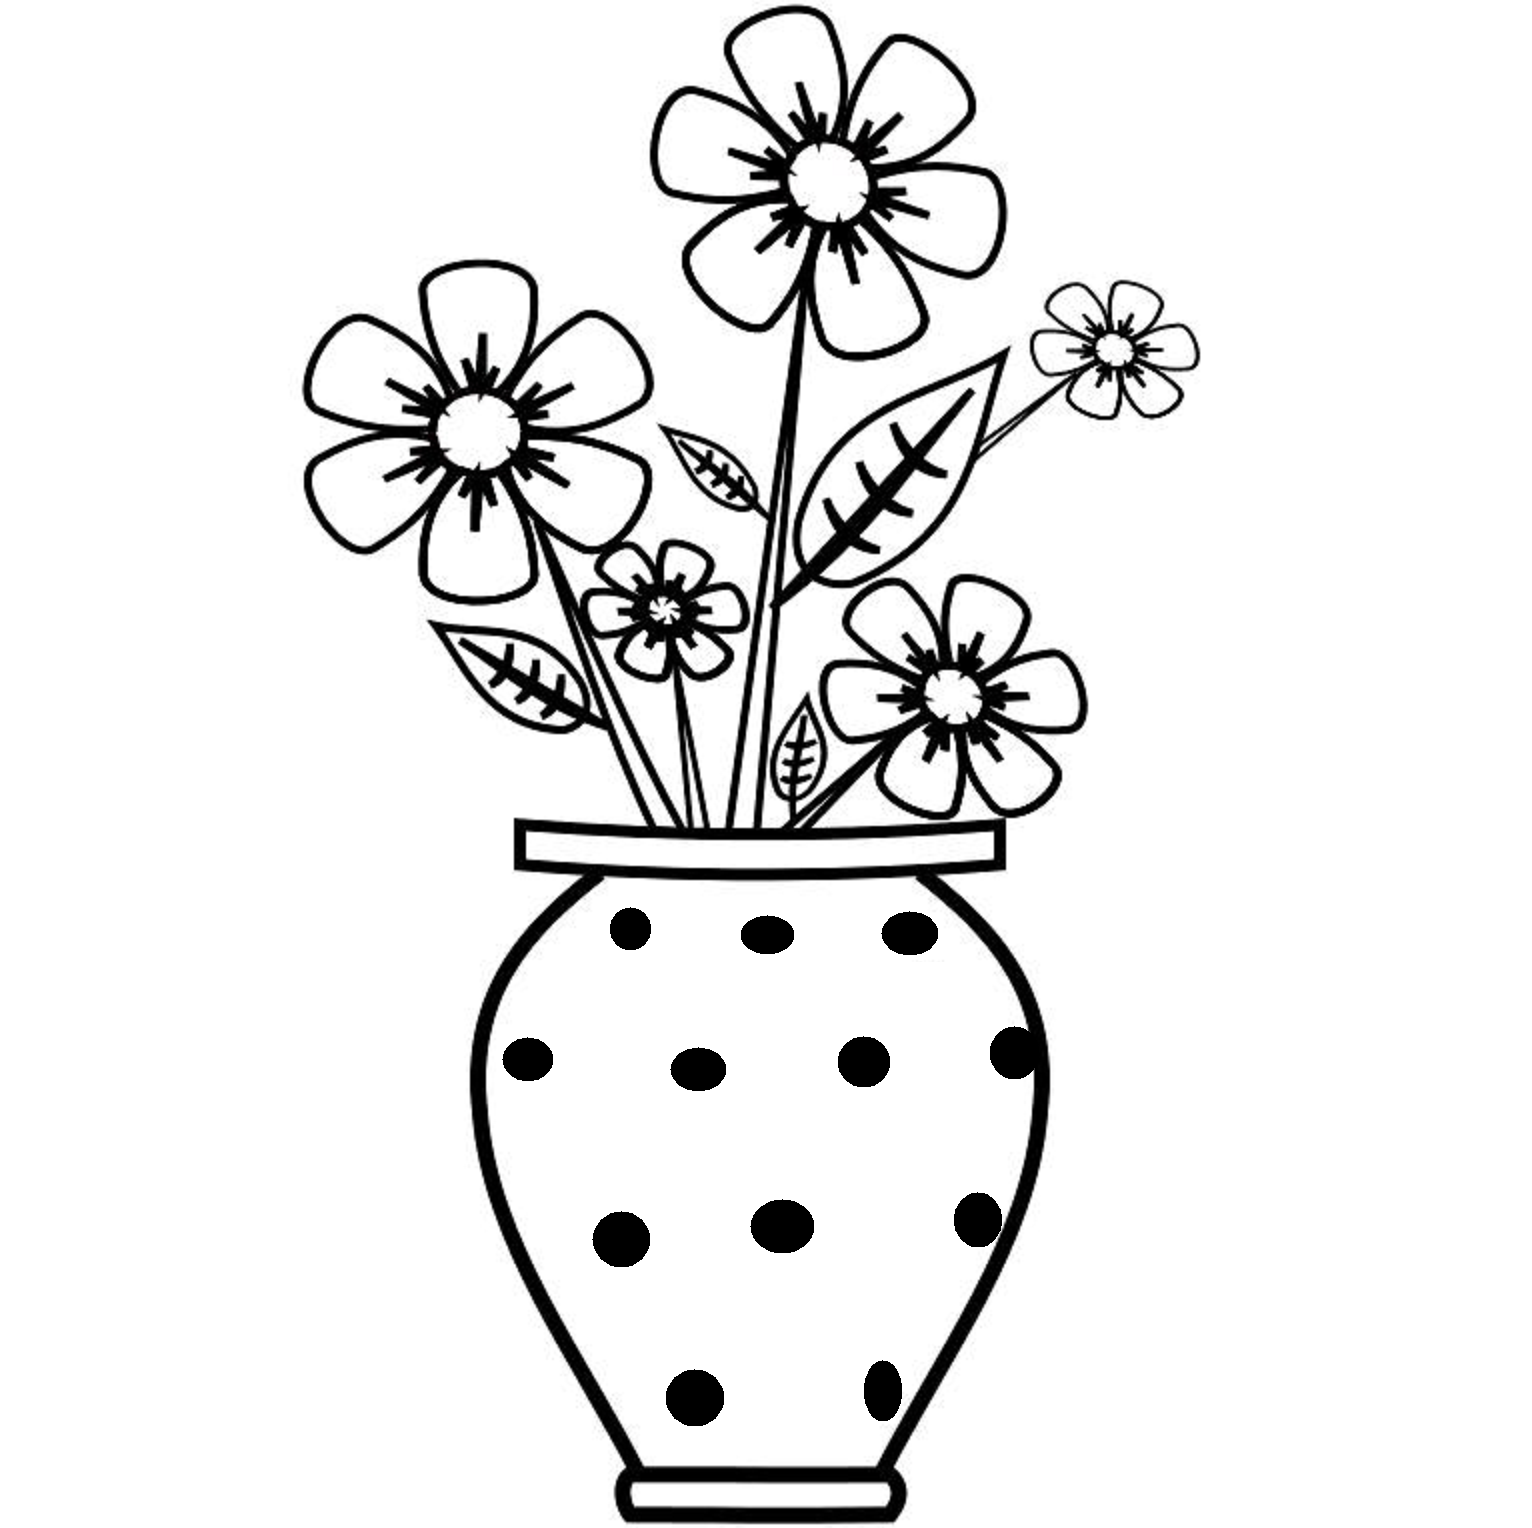 flower vase pictures to color - photo #17